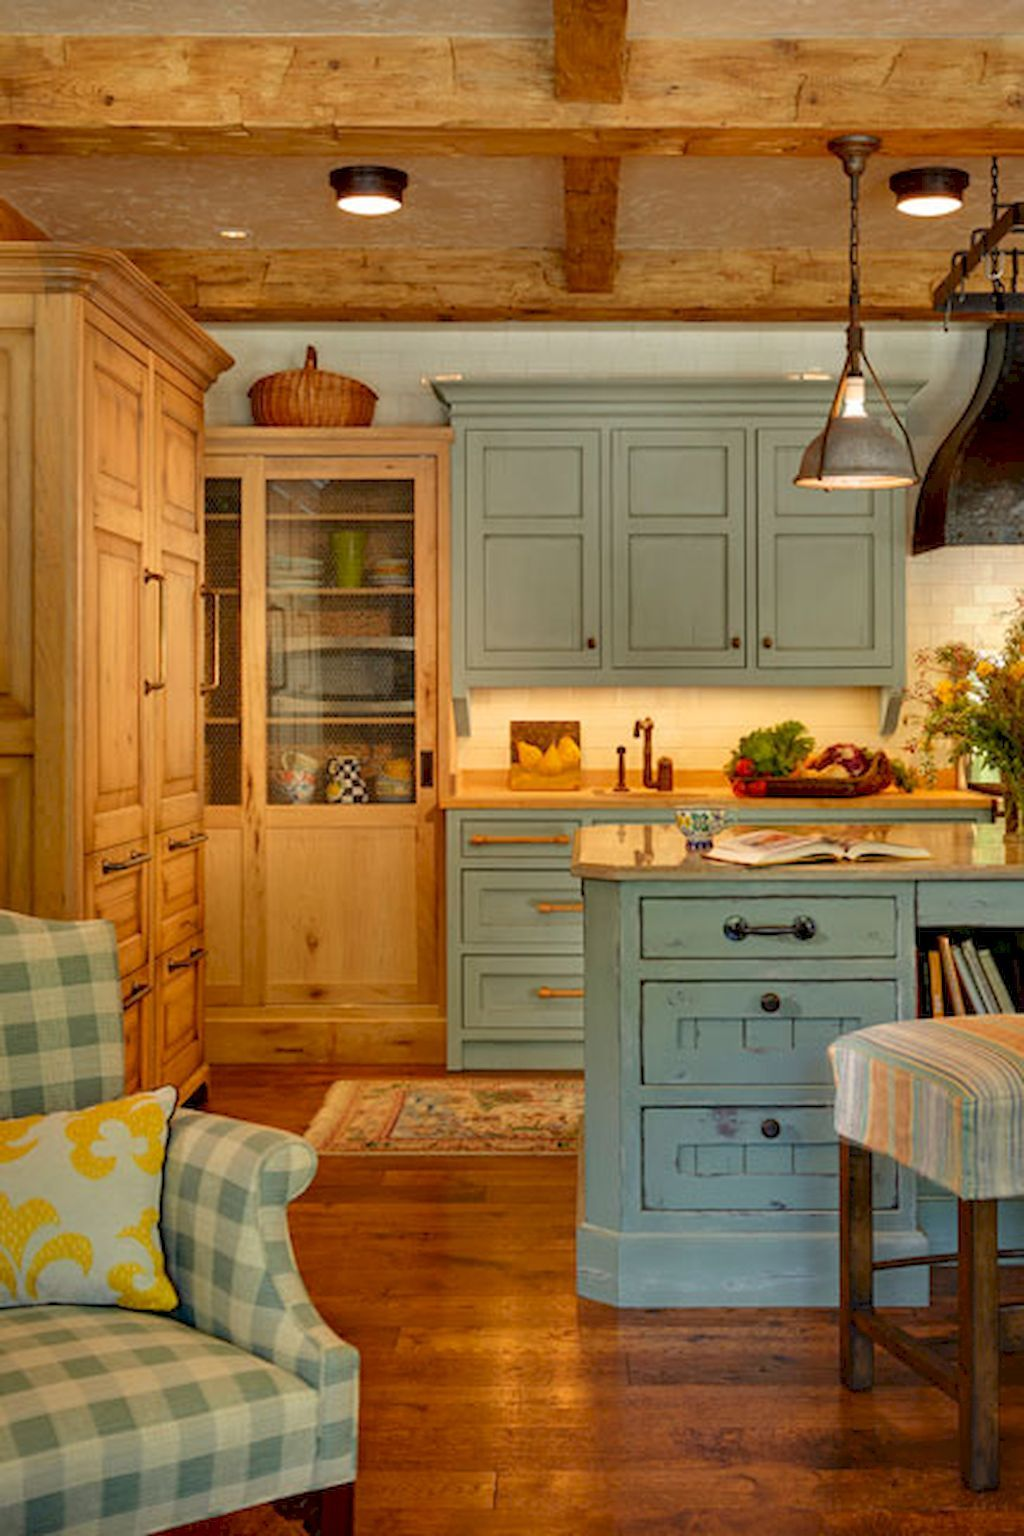 Country Farmhouse Kitchen Cabinets Cool 90 Rustic Kitchen Cabinets Farmhouse Style Ideas https